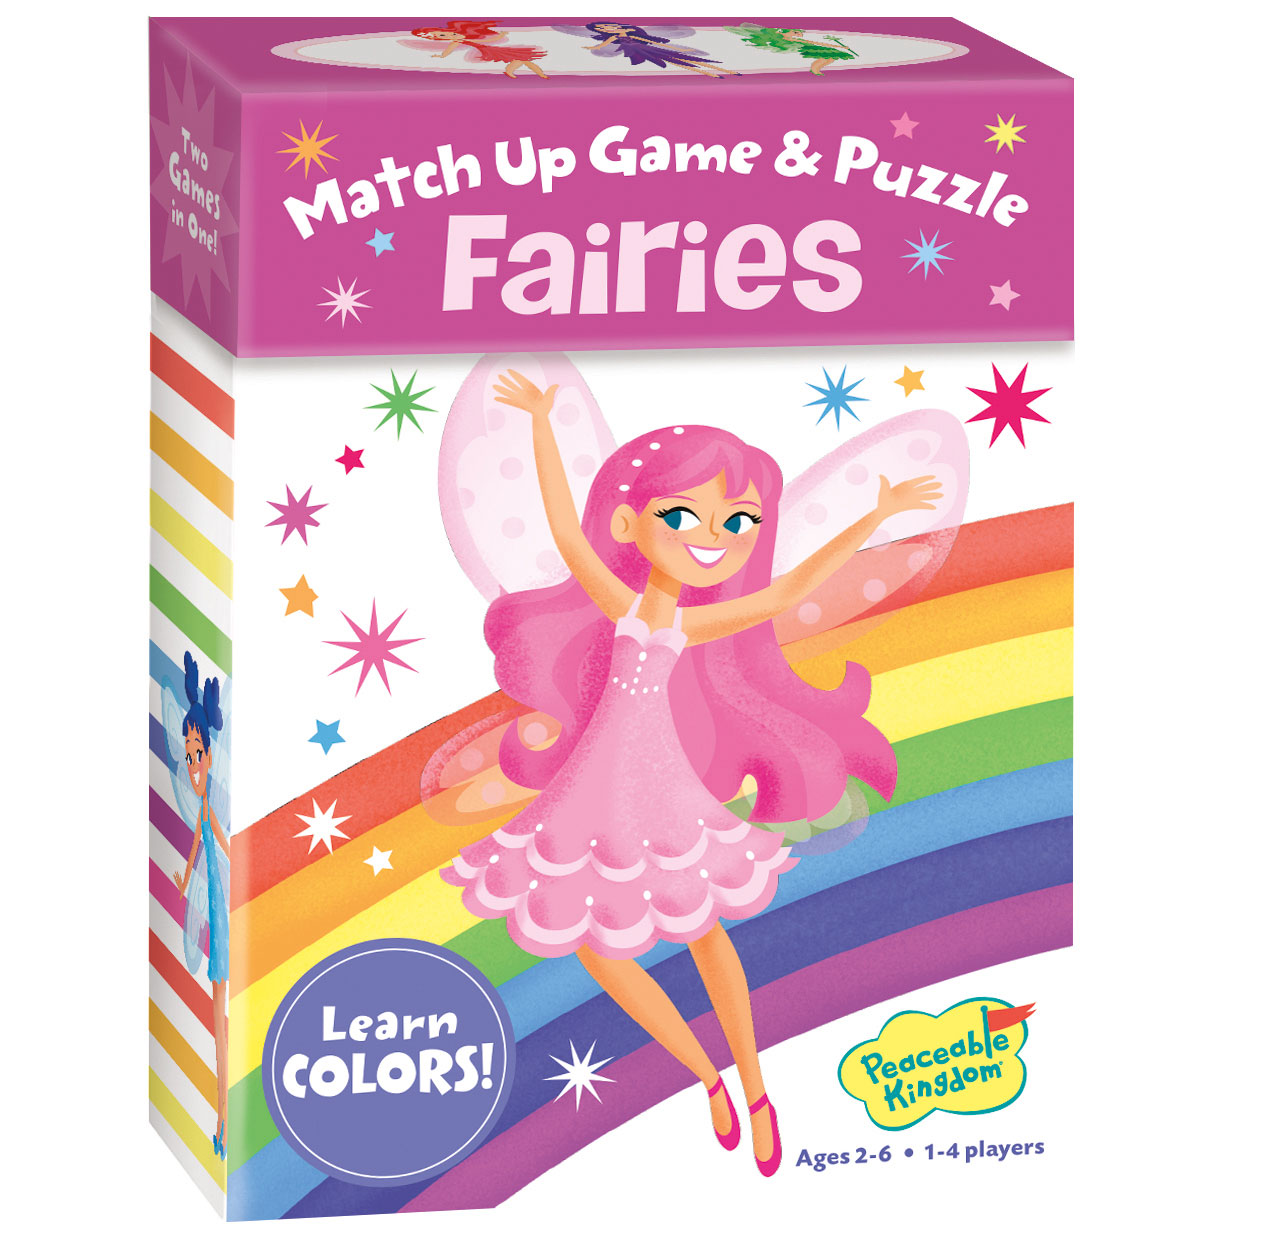 Match Up Game & Puzzle, Fairy - Colors by Peaceable Kingdom